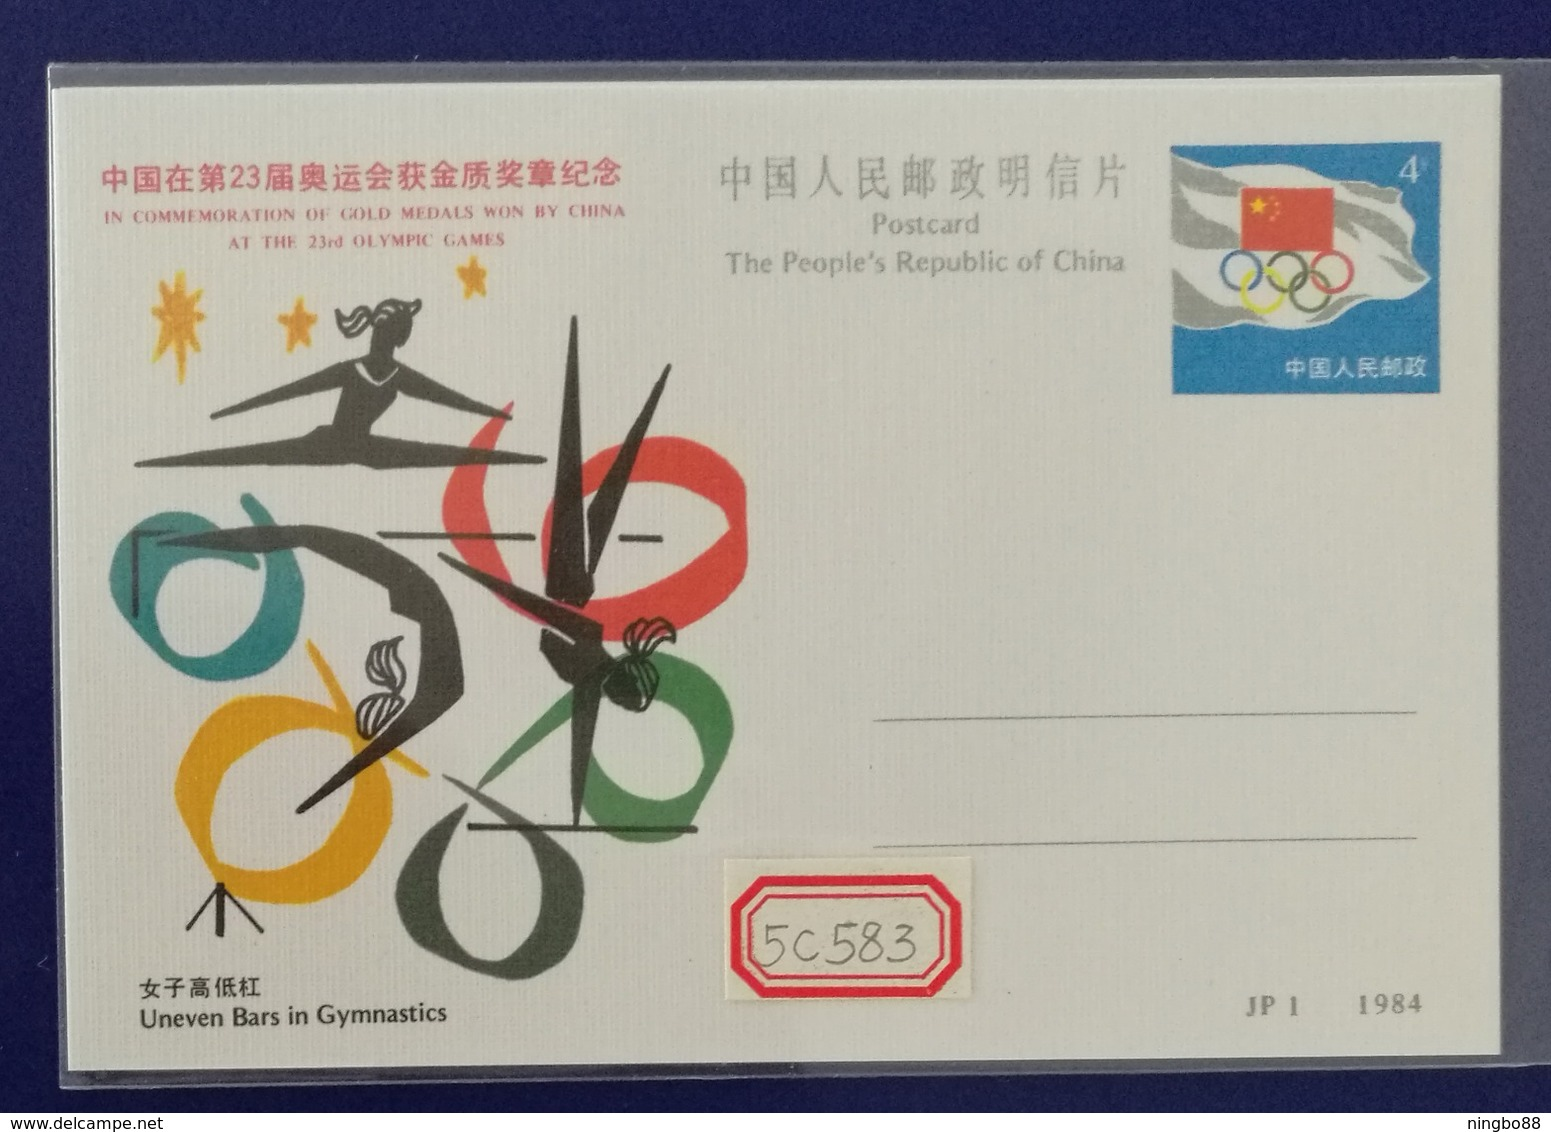 Uneven Bars In Gymnastics,China 1984 JP1 Gold Medal Won In 23th Los Angeles Olympic Games Pre-stamped Card - Gymnastics